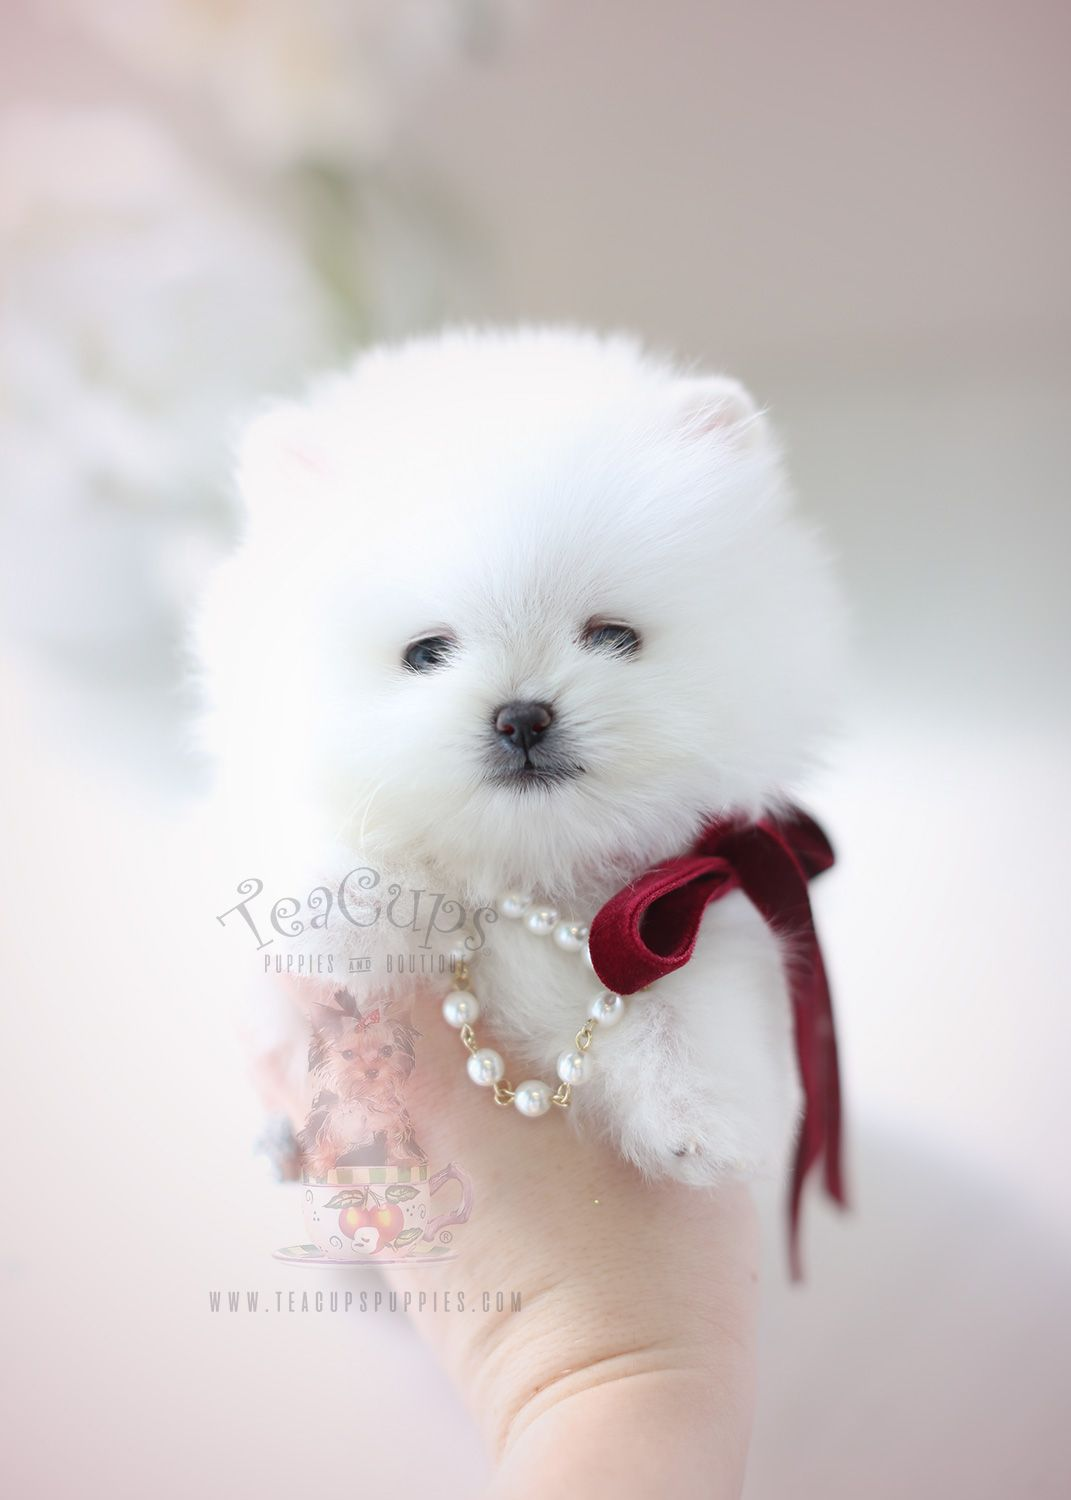 Beautiful Pomeranian Puppy By Teacup Puppies Boutique Home Raised And Locally Bred In South Florida Teacup Puppies Pomeranian Puppy Pomeranian Puppy Teacup